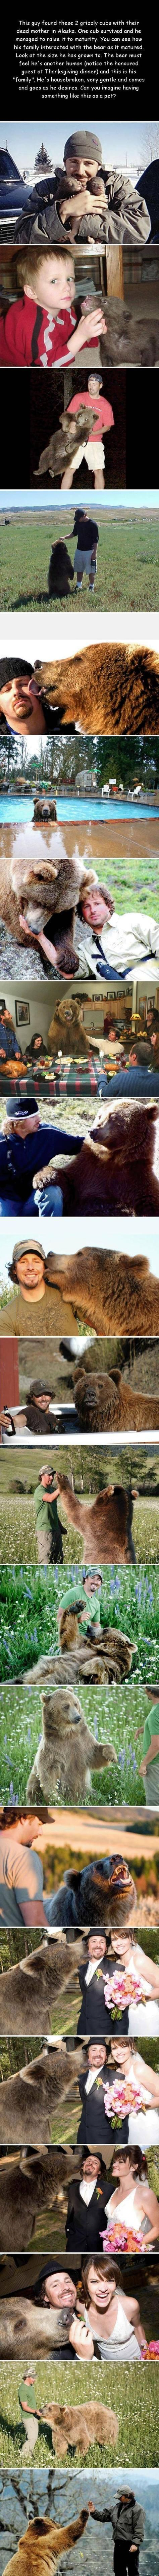 Cute, but I can't help but think the bear is going to eat him one day